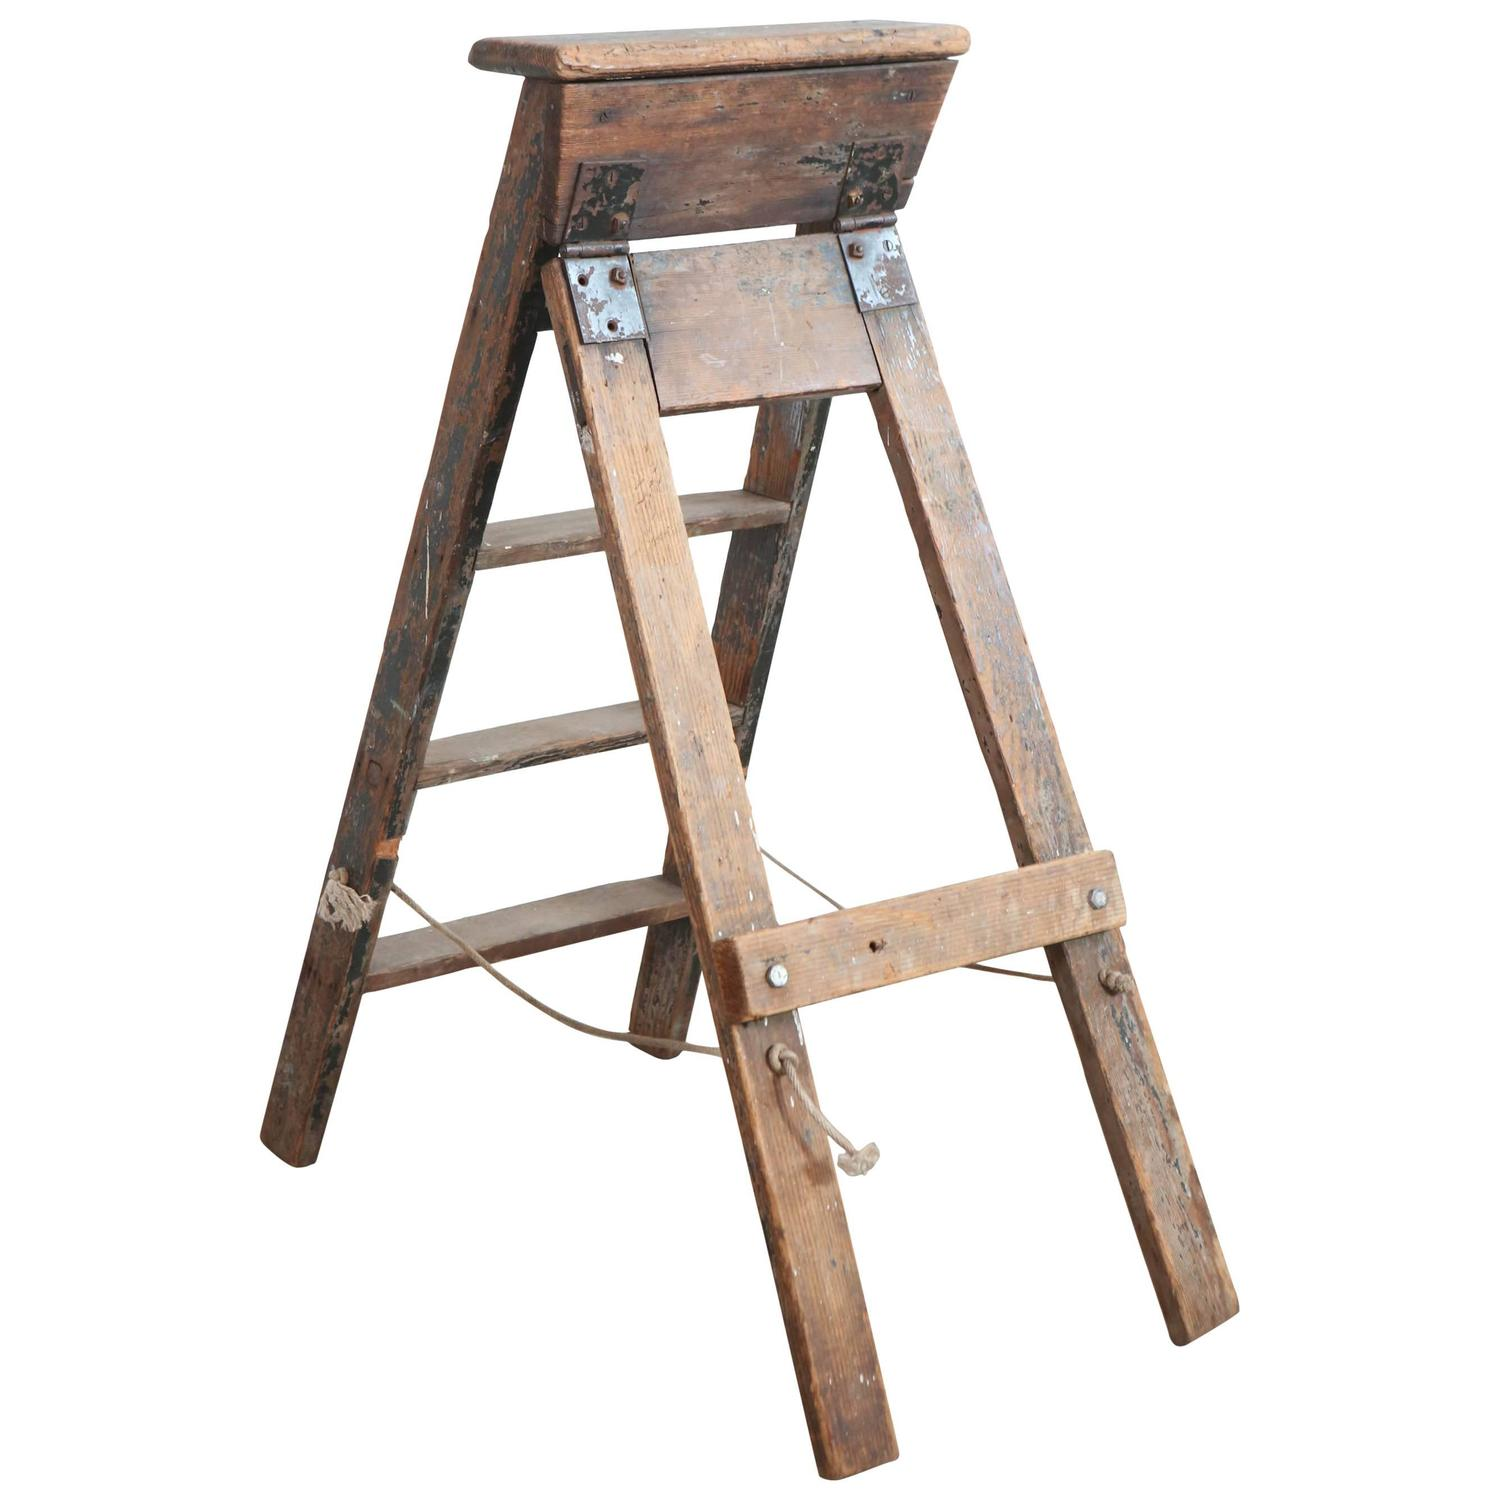 Rustic Five Step Wooden Ladder For Sale at 1stdibs